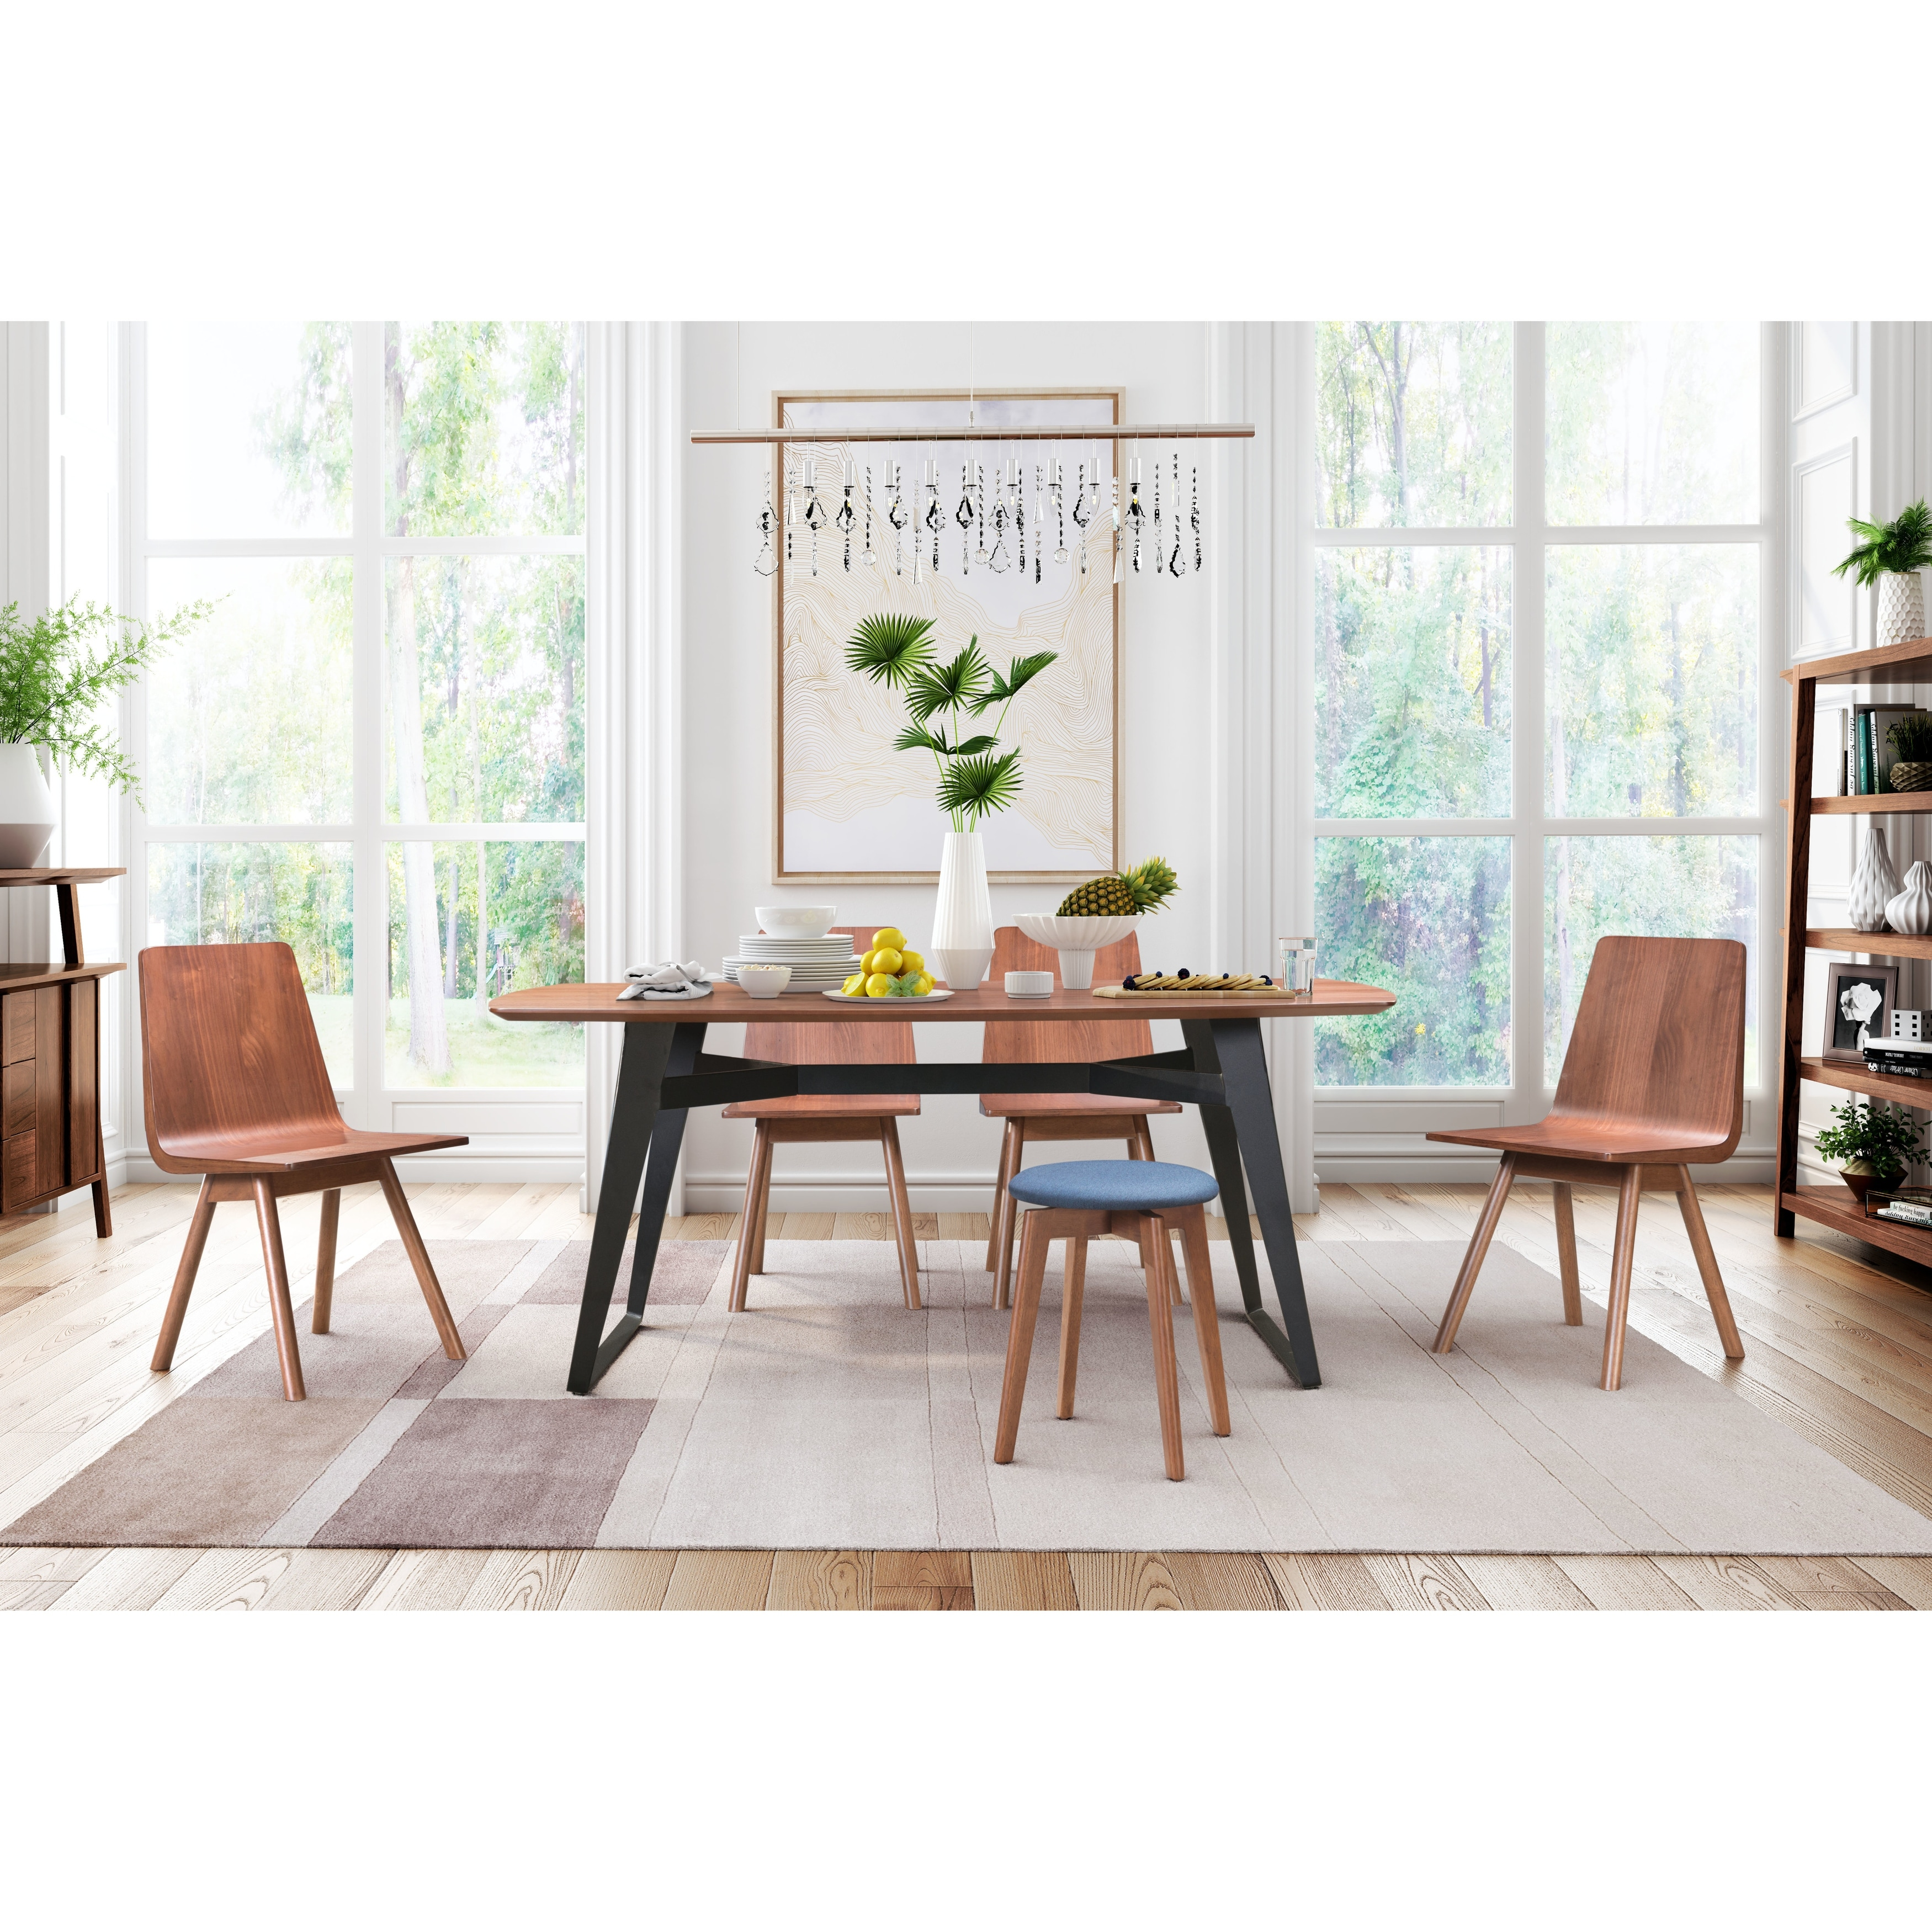 Audrey Dining Chair Set Of 2 Walnut Overstock 24072615